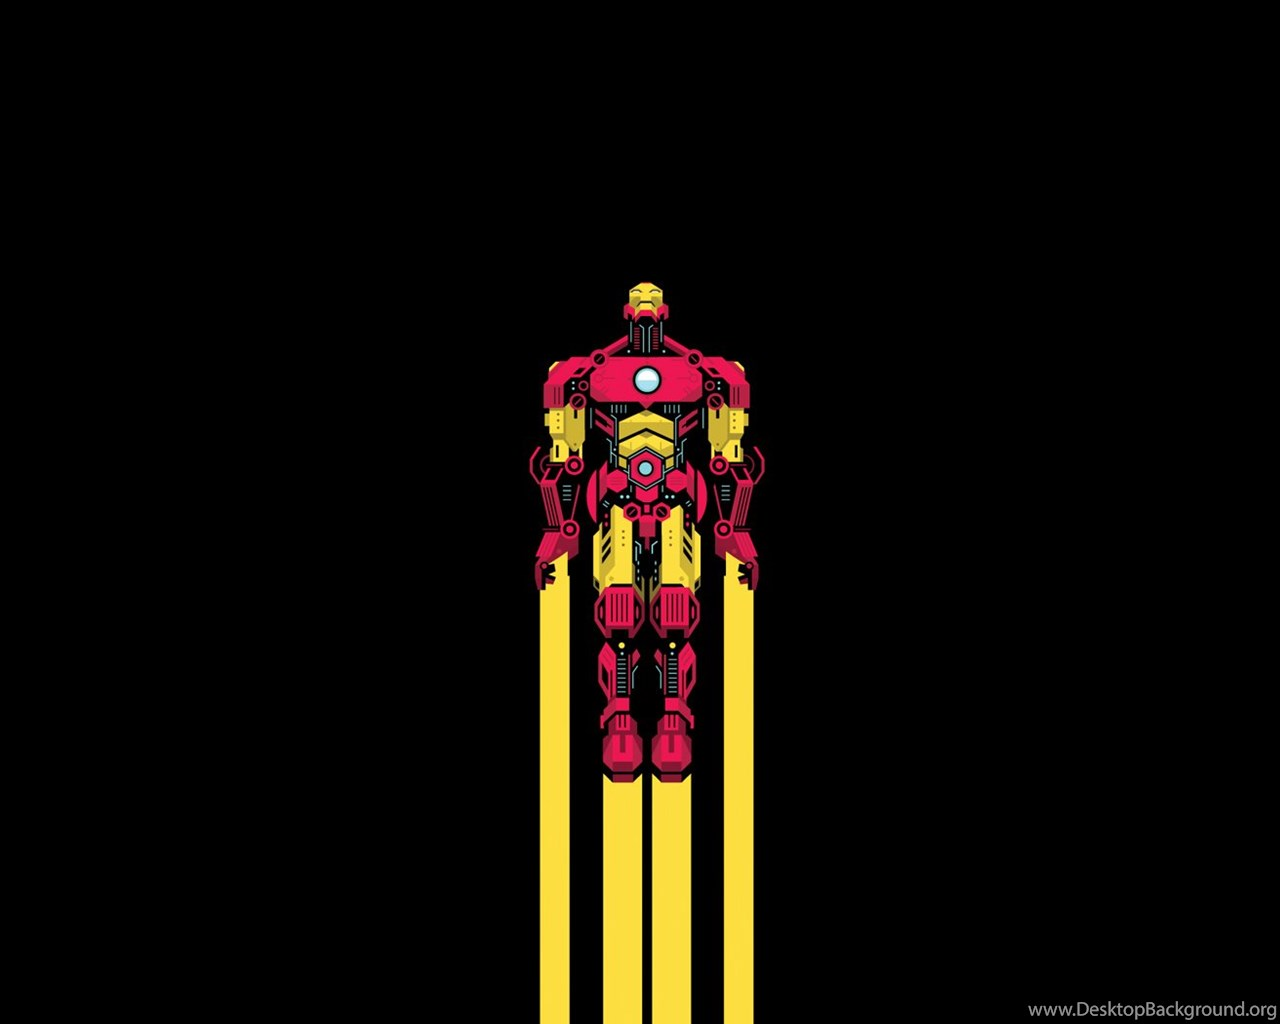 Wallpapers minimalist superhero displaying images for - Superhero iphone wallpaper hd ...